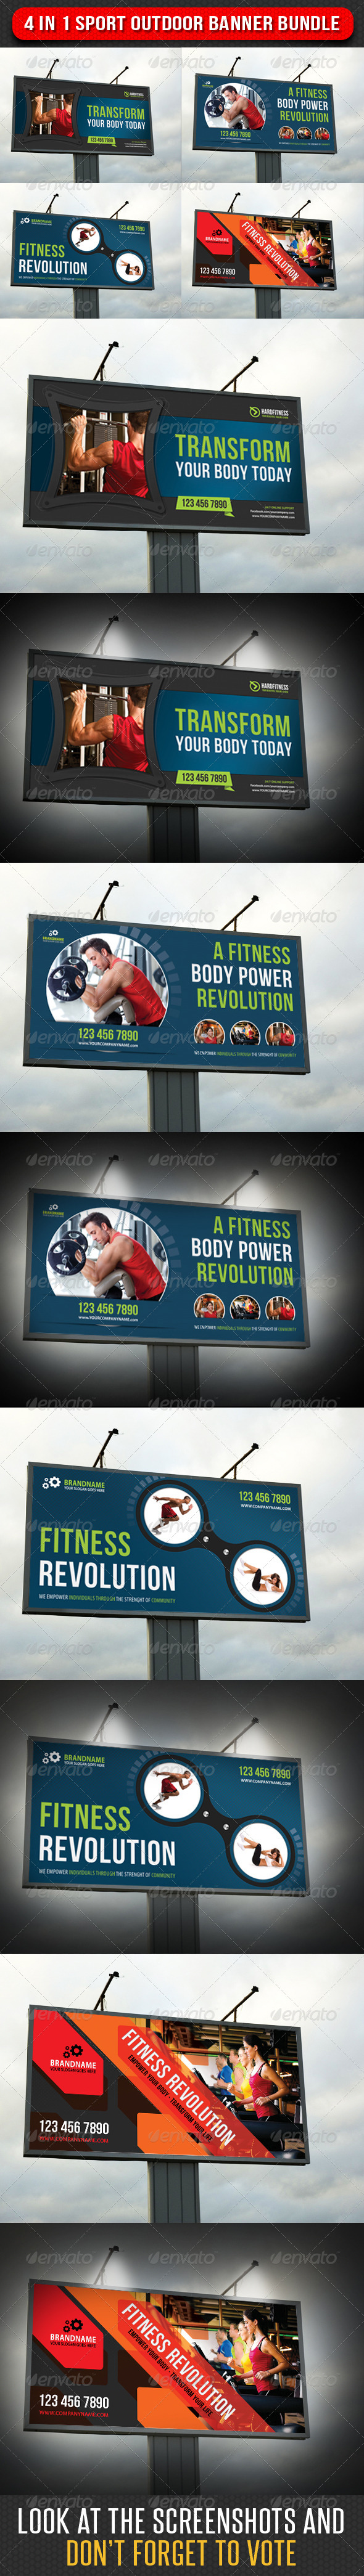 GraphicRiver 4 in 1 Sport Outdoor Banner Bundle 02 7124758